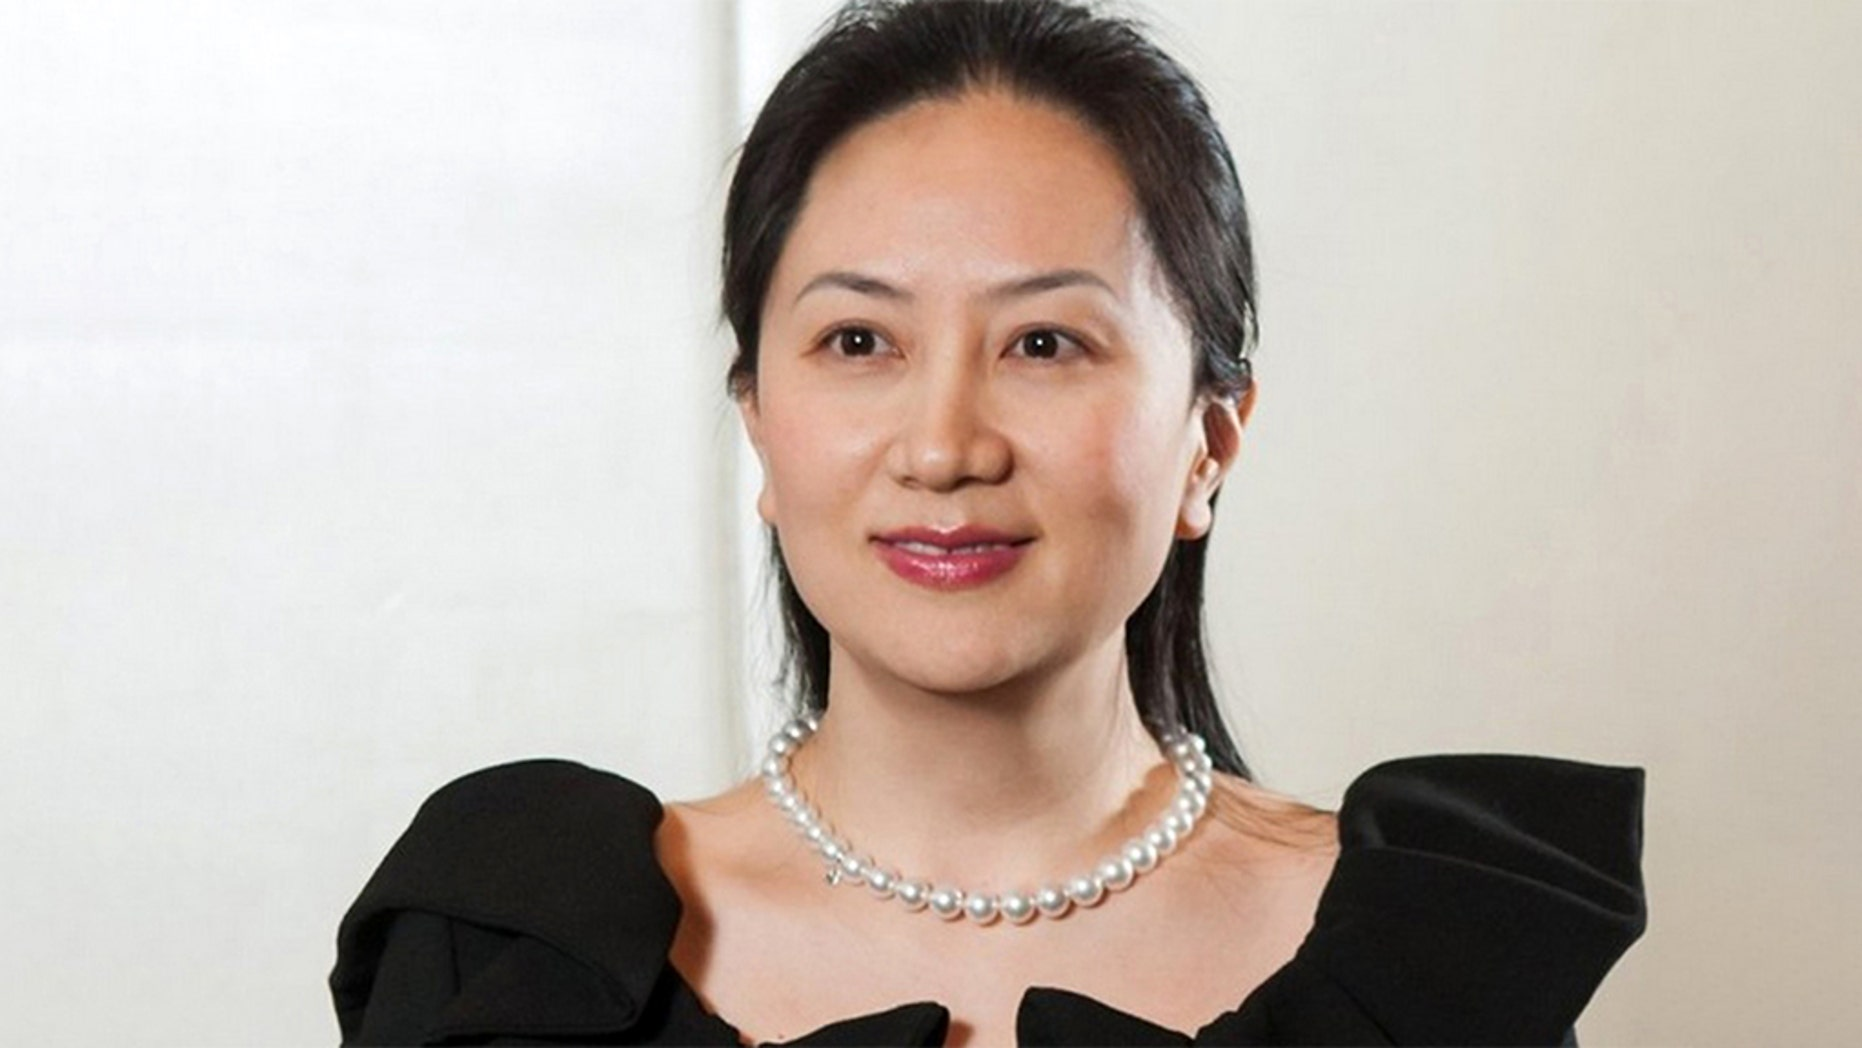 Justice William Ehrcke announced his decision to grant Meng Wanzhou bail Tuesday after 2 1/2 days of hearings. Meng is the chief financial officer of telecommunications giant Huawei and also the daughter of its founder.